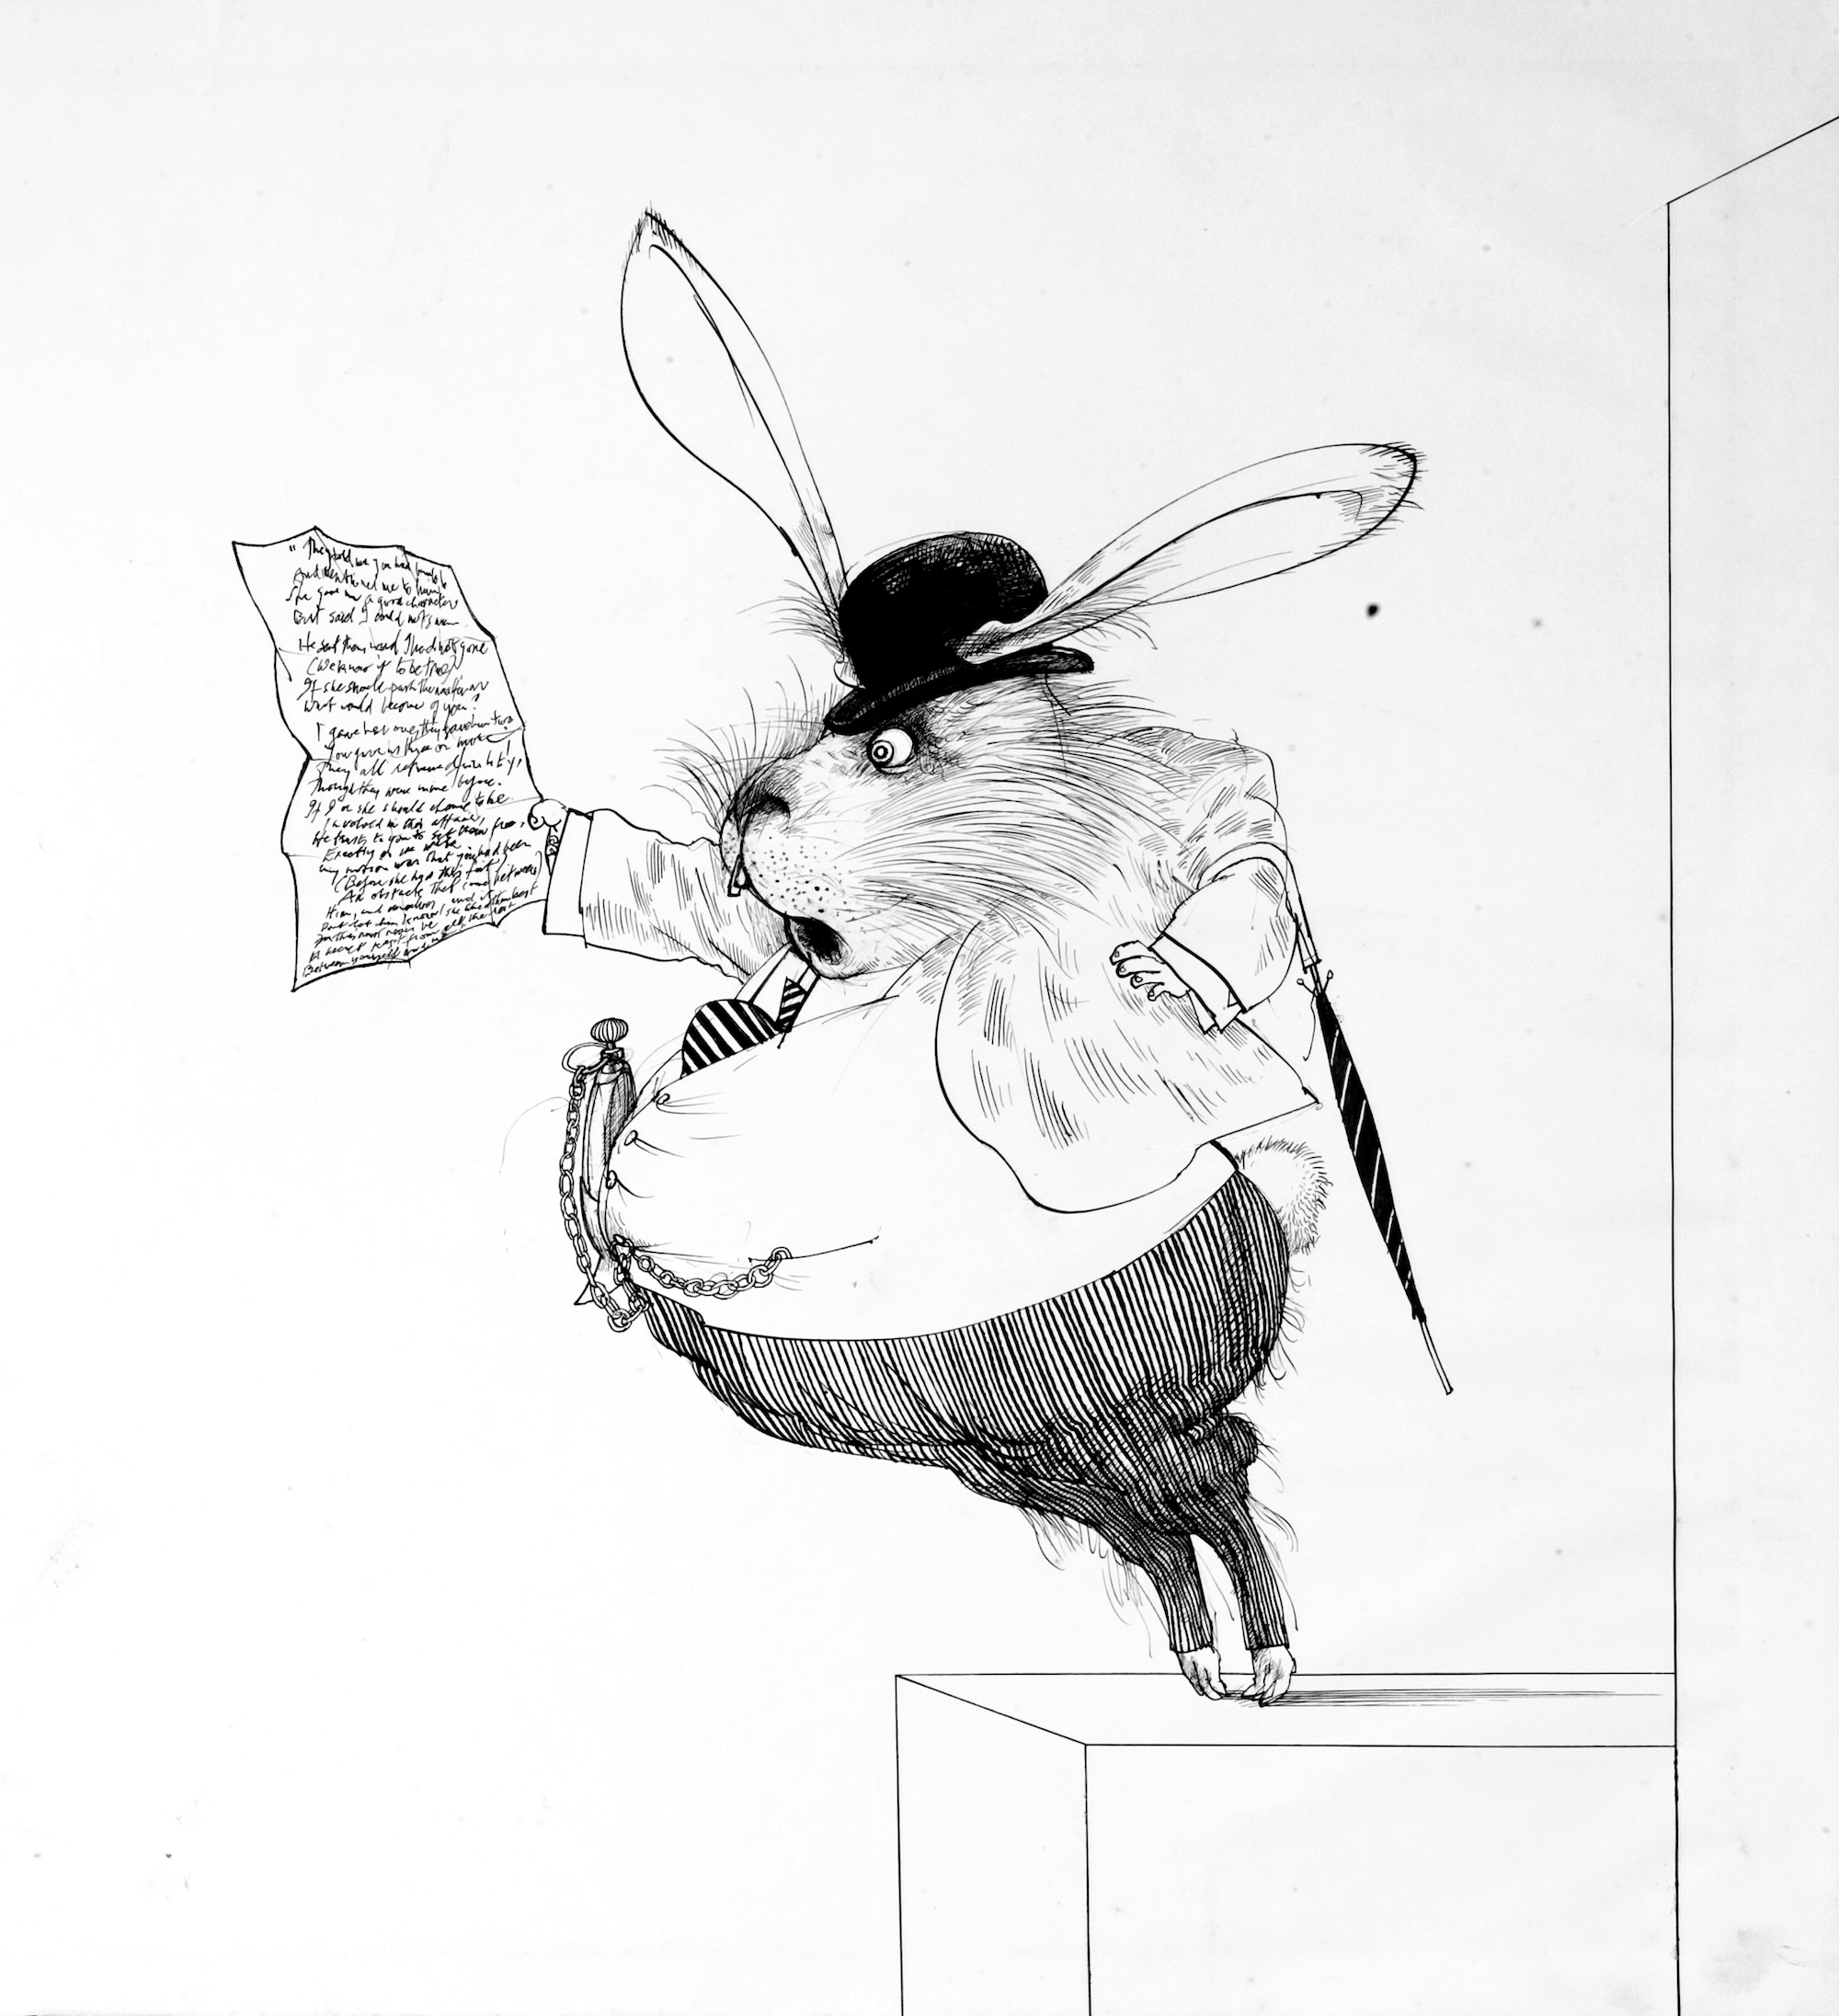 Original drawing for Alice in Wonderland of the White Rabbit, 1967 (c) Ralph Steadman Art Collection, 2019. All rights reserved.